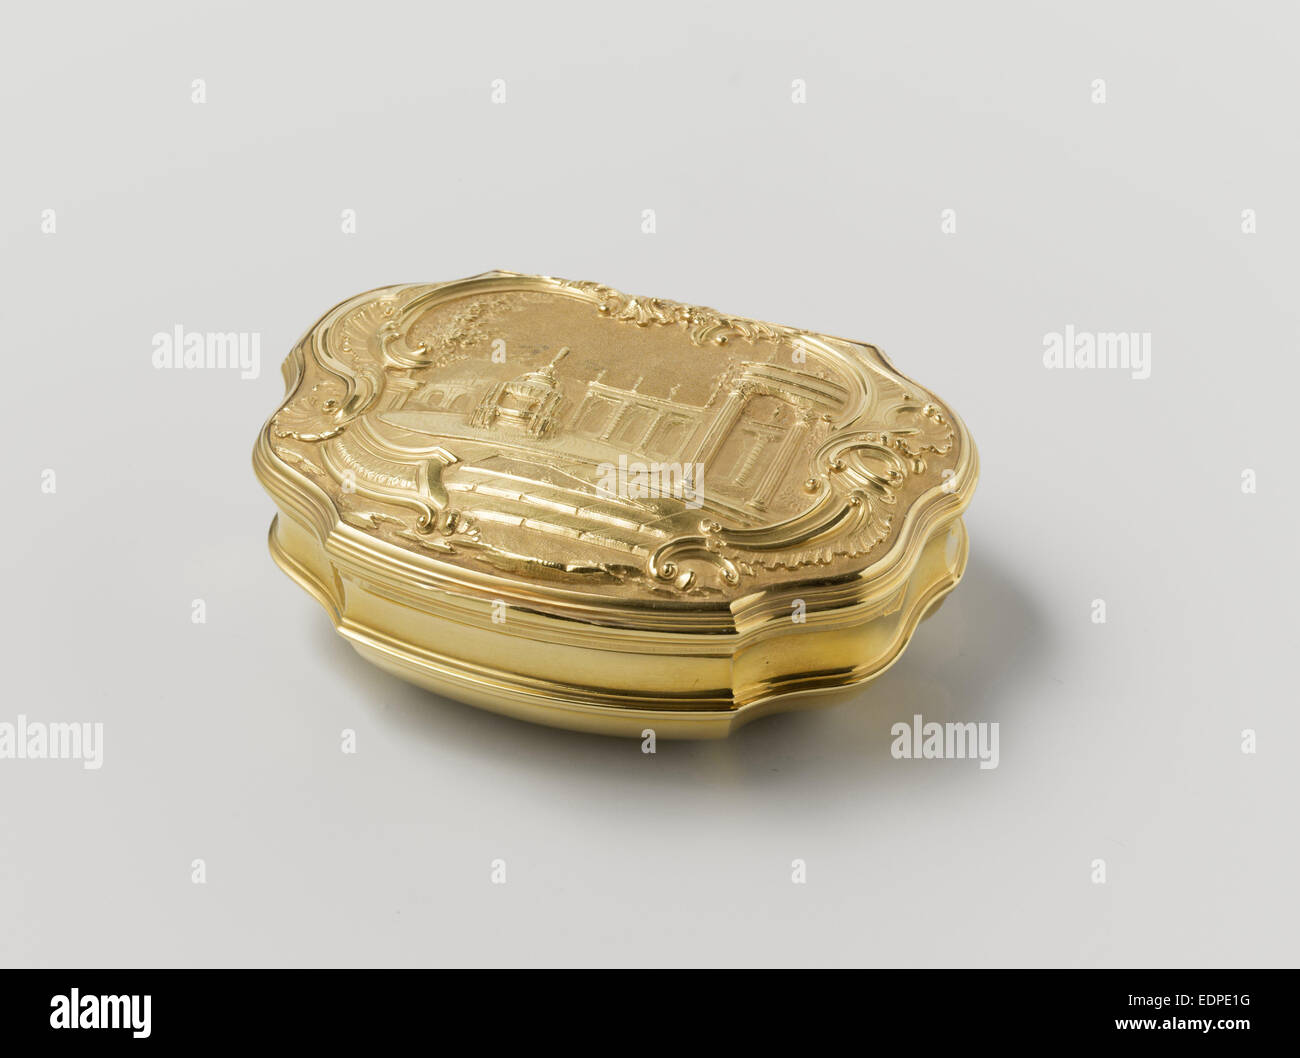 Snuff box of gold, adorned with driven representation of a fountain in a garden, attributed to Jean Saint, 1739 - Stock Image